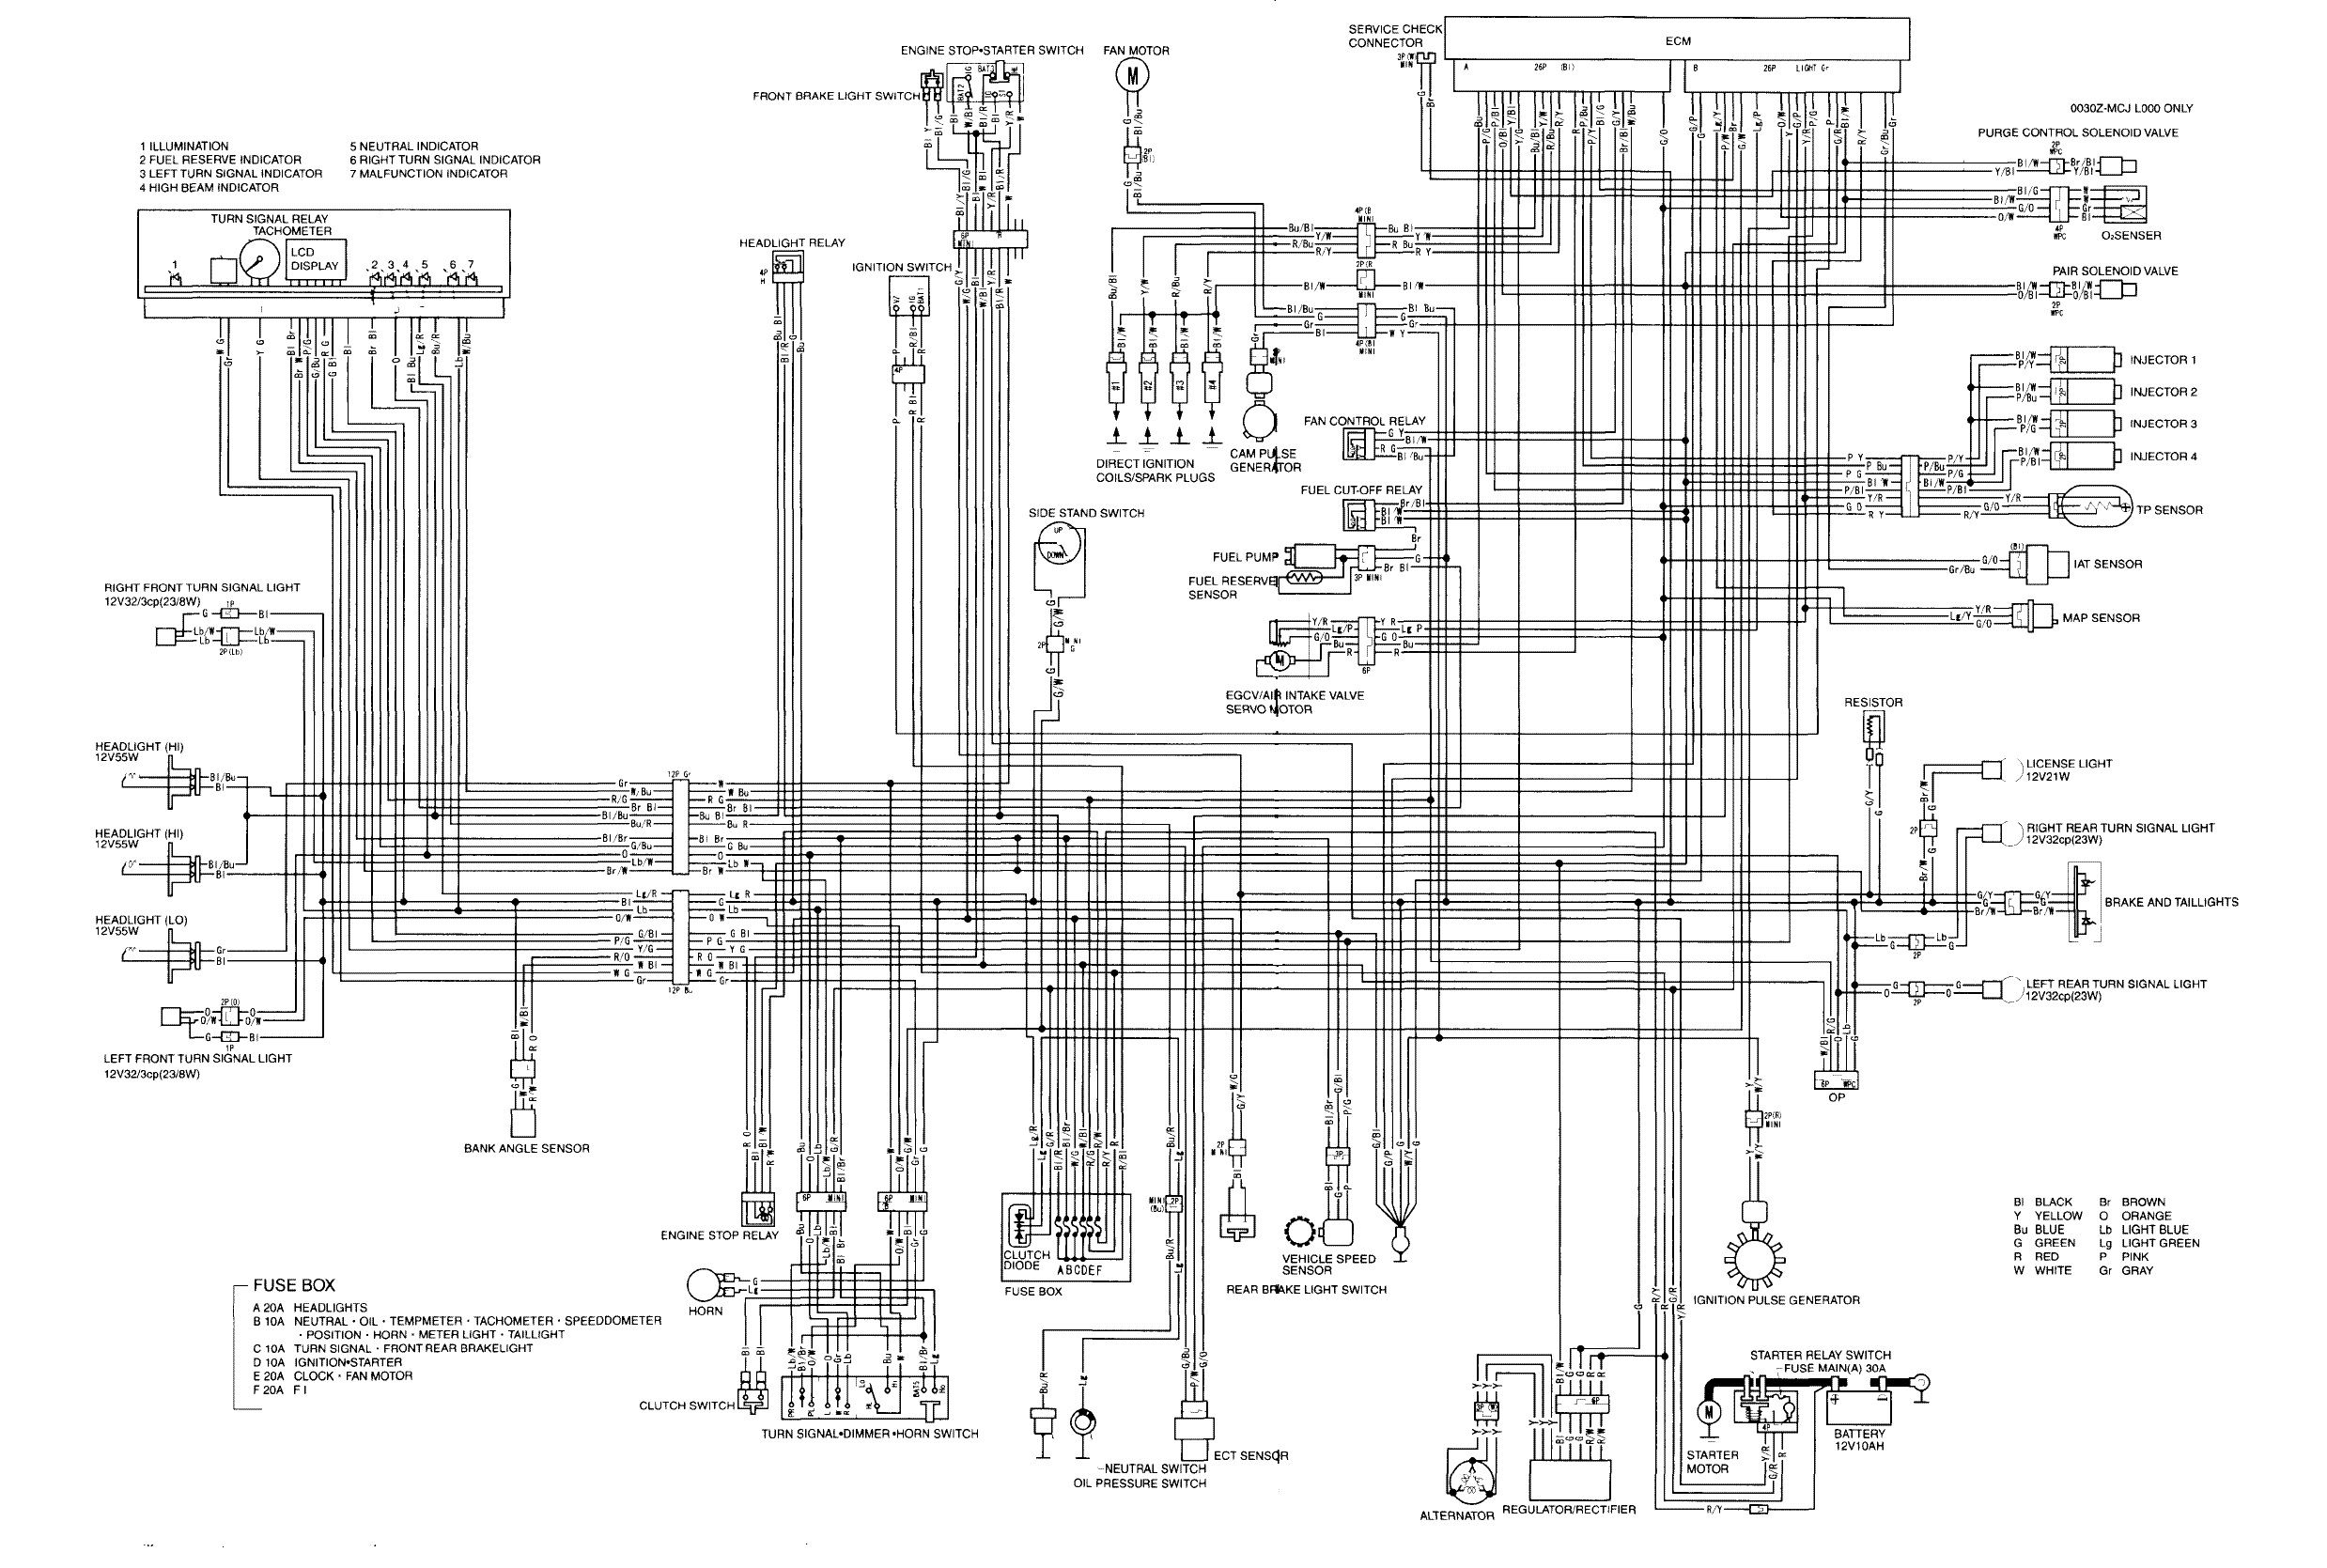 Cat 250 Wiring Diagram On Yamaha 90 Outboard Wiring Diagram 2006